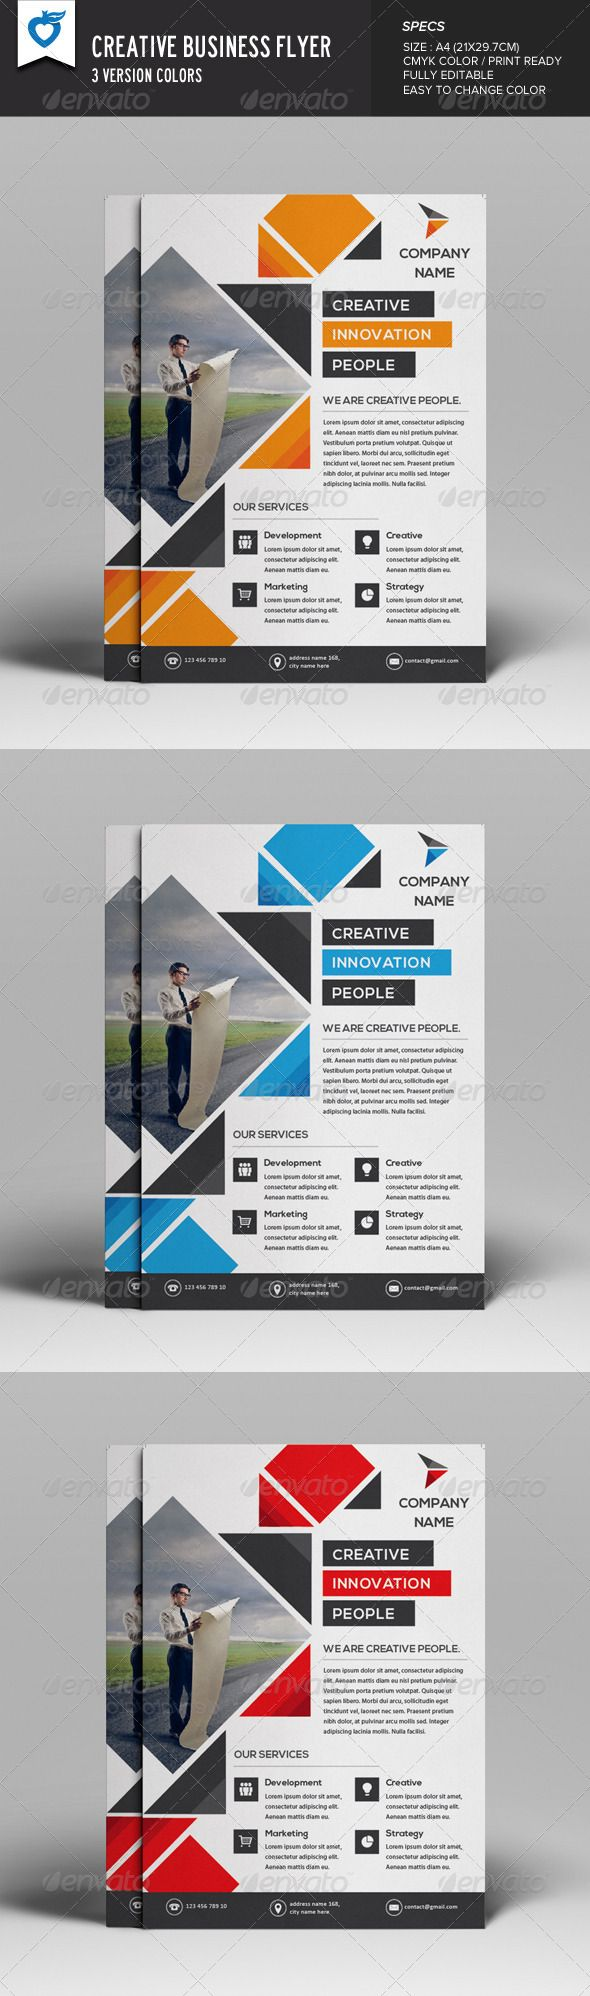 create business flyers free